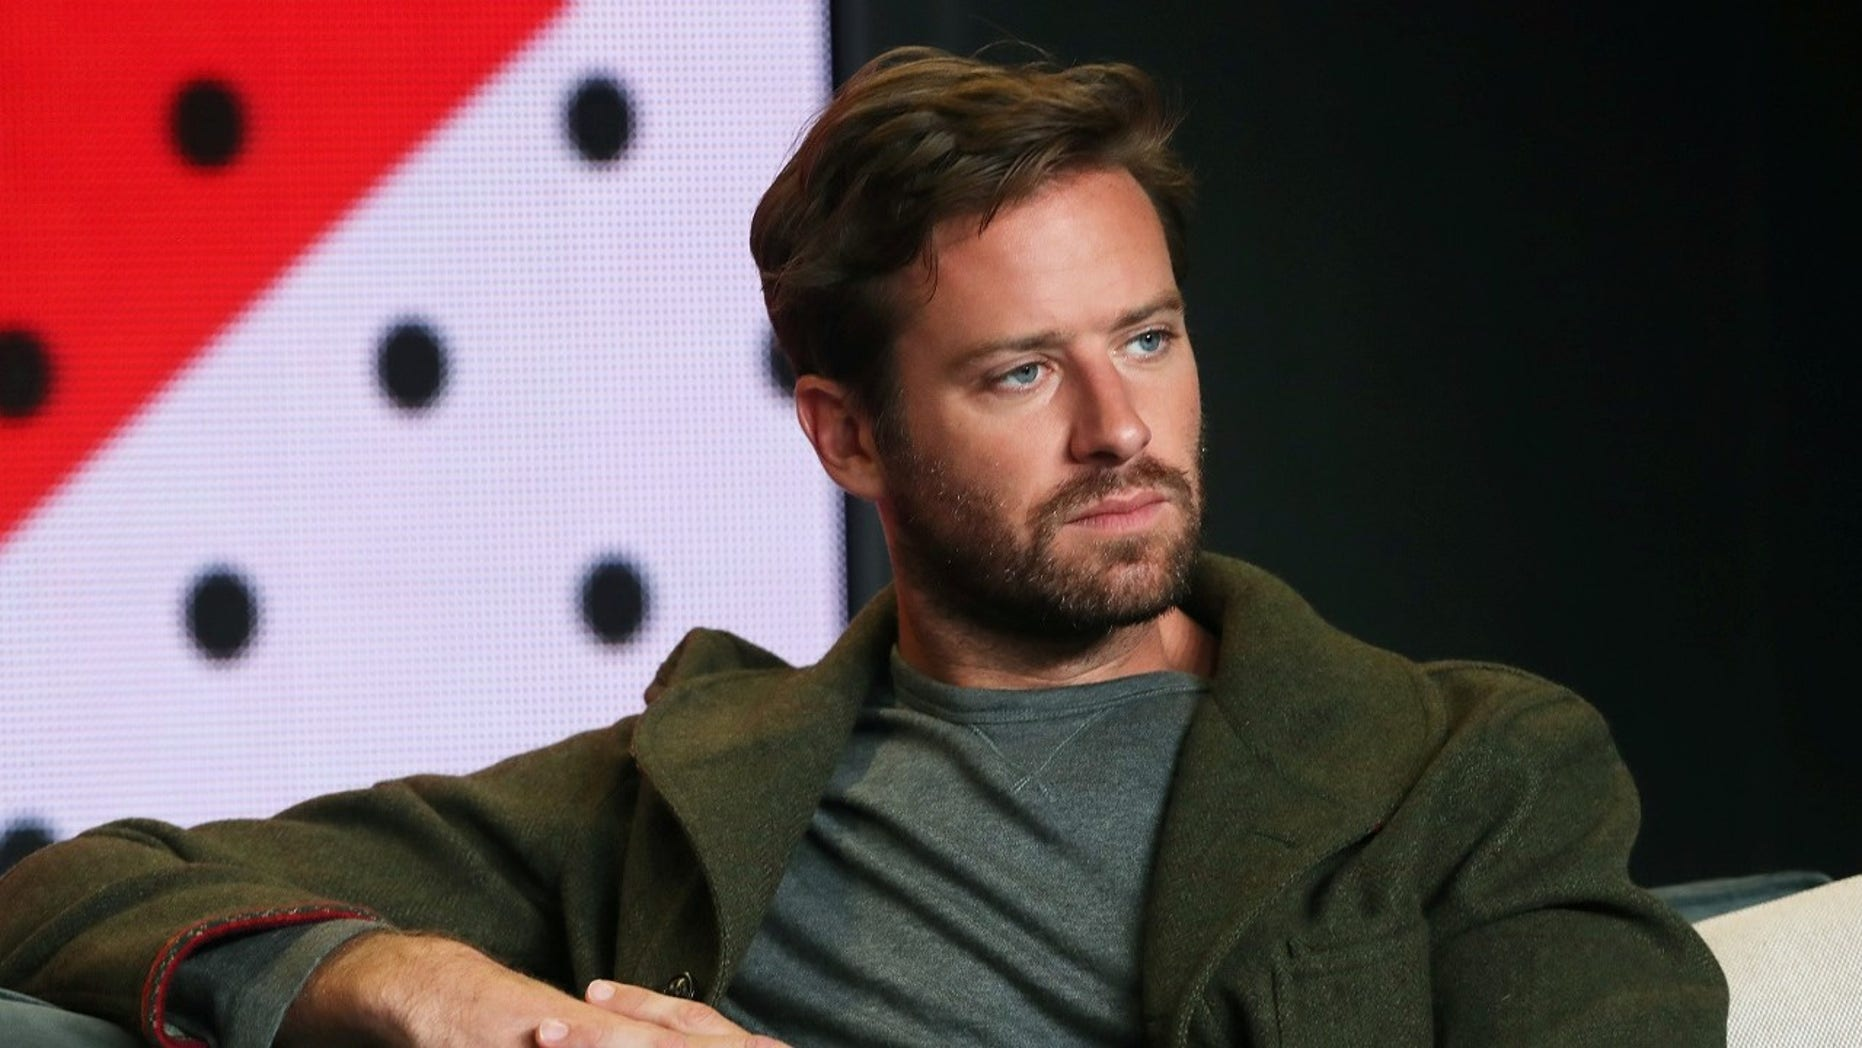 """Actor Armie Hammer attends a press conference to promote the film """"Call Me By Your Name"""" at the Toronto International Film Festival."""